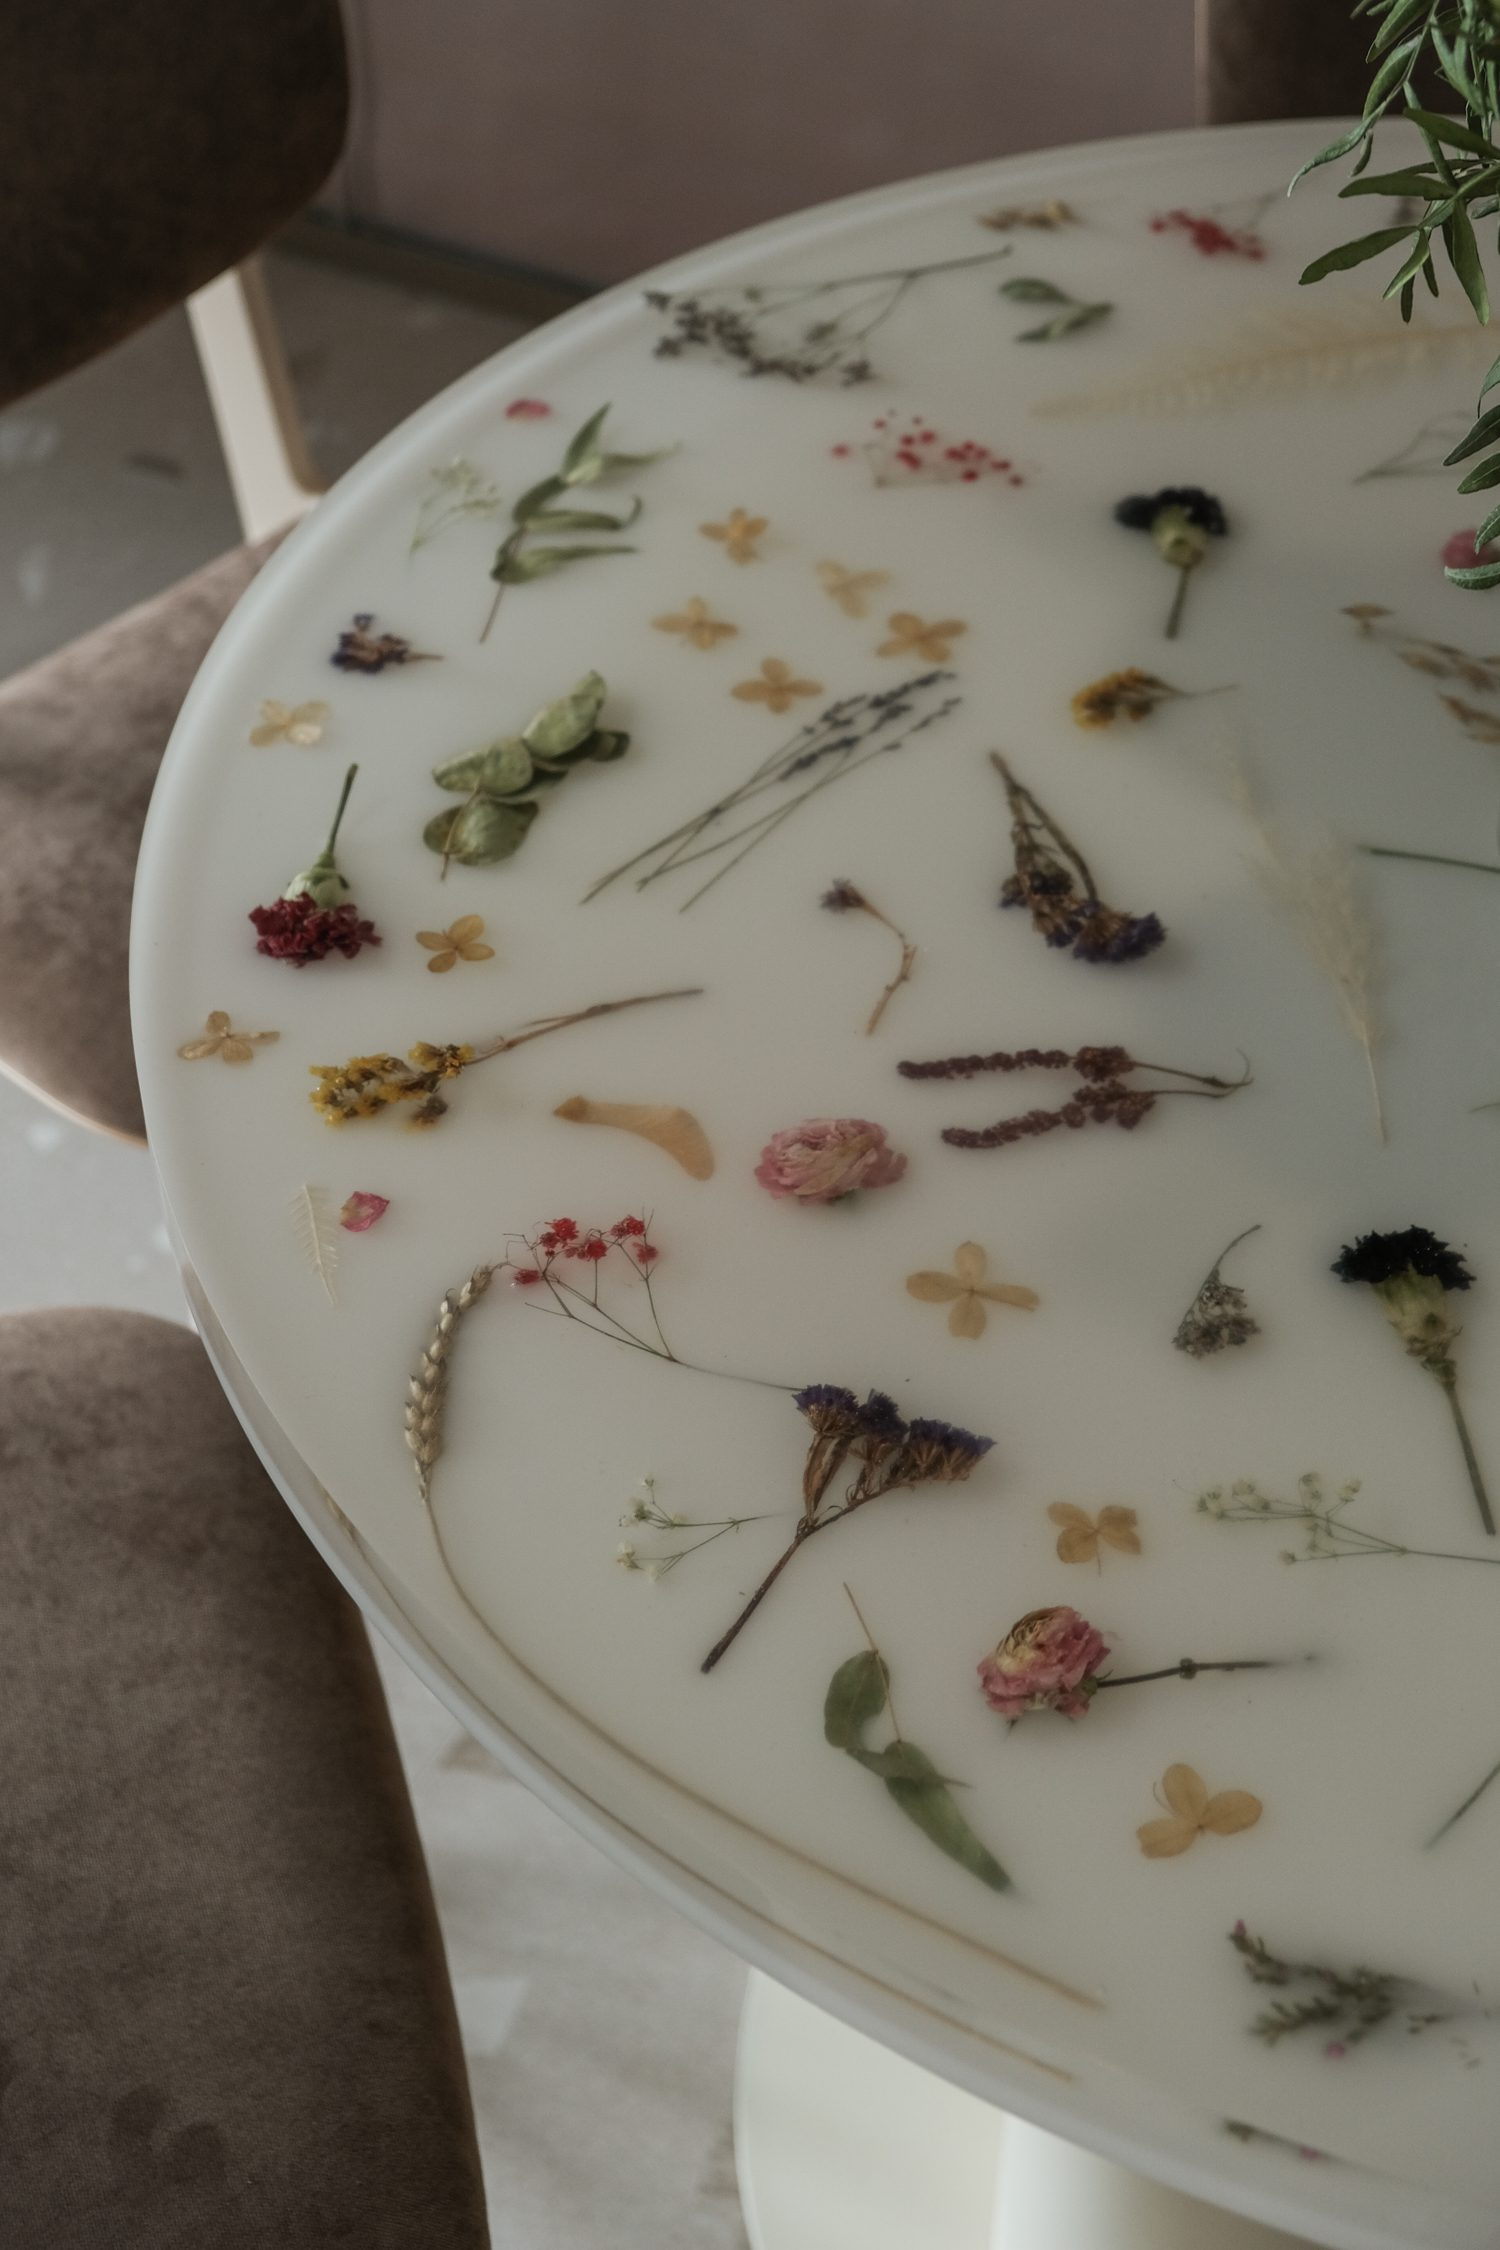 A circular tabletop offers the sweet surprise of embedded flowers.